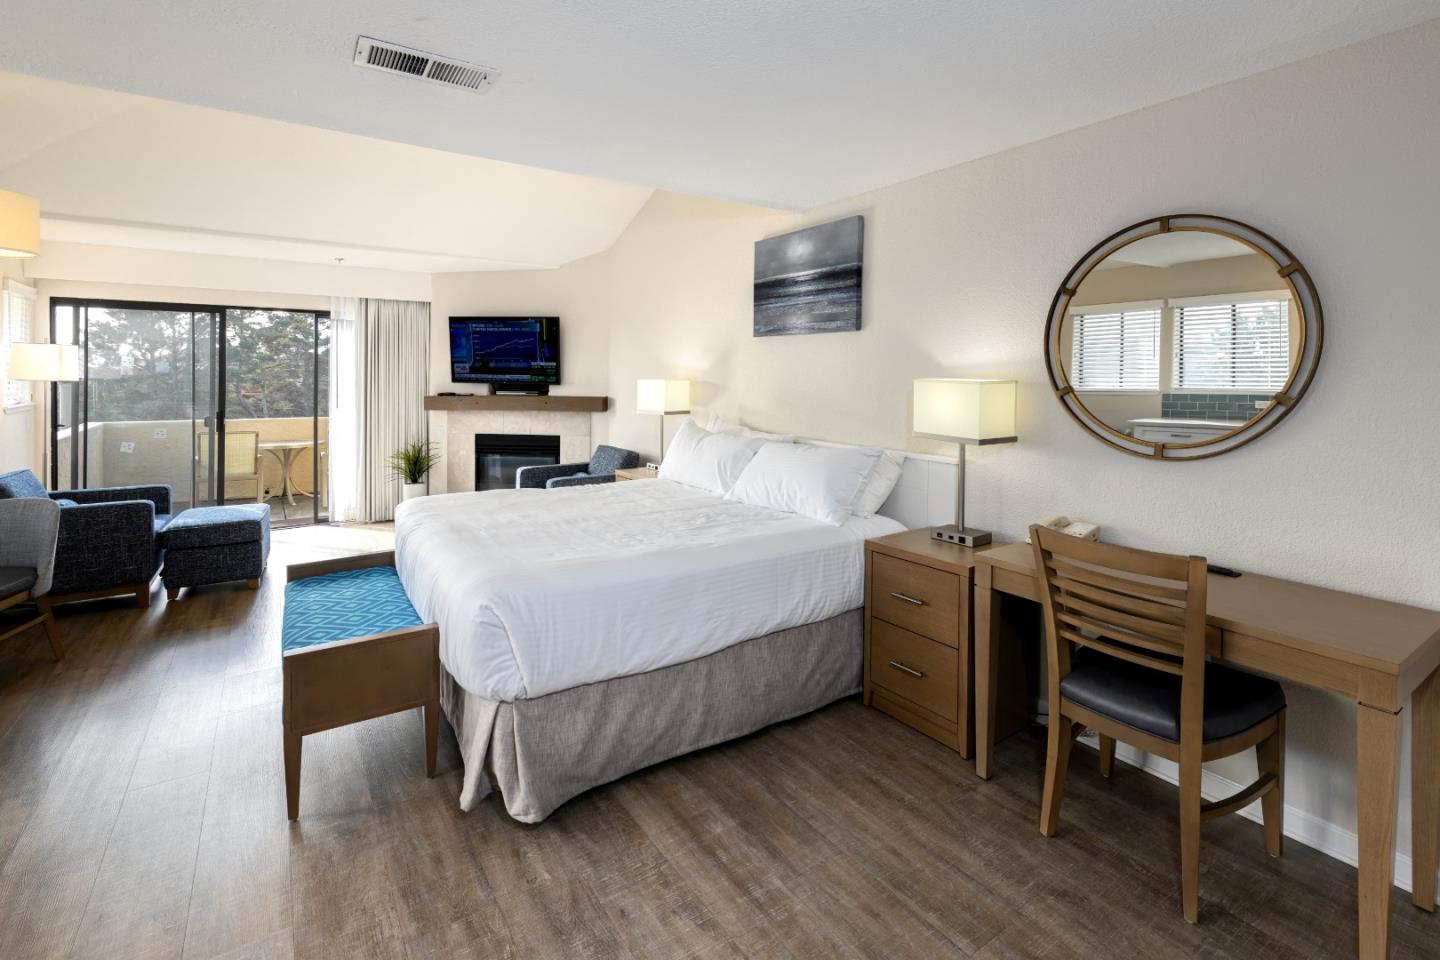 One of only 2 Upper floor corner studios at the Resort. This recently remodeled, fully furnished condo is the ideal second home with a proven rental history. Enjoy the 3 pools and spas, golf and tennis nearby and miles of white Sandy beaches.